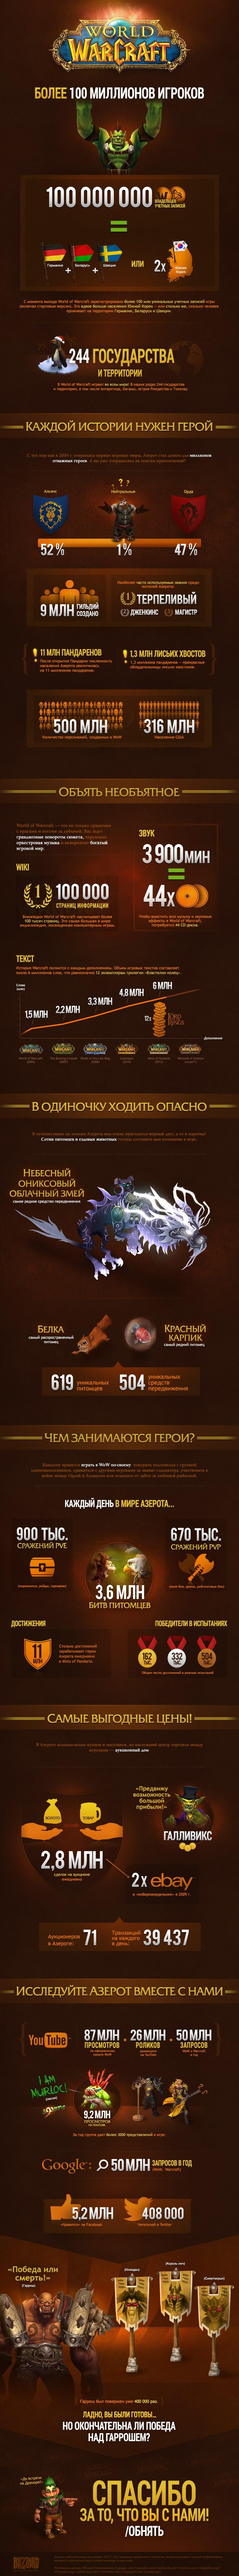 WoW Infographic-2014 RU